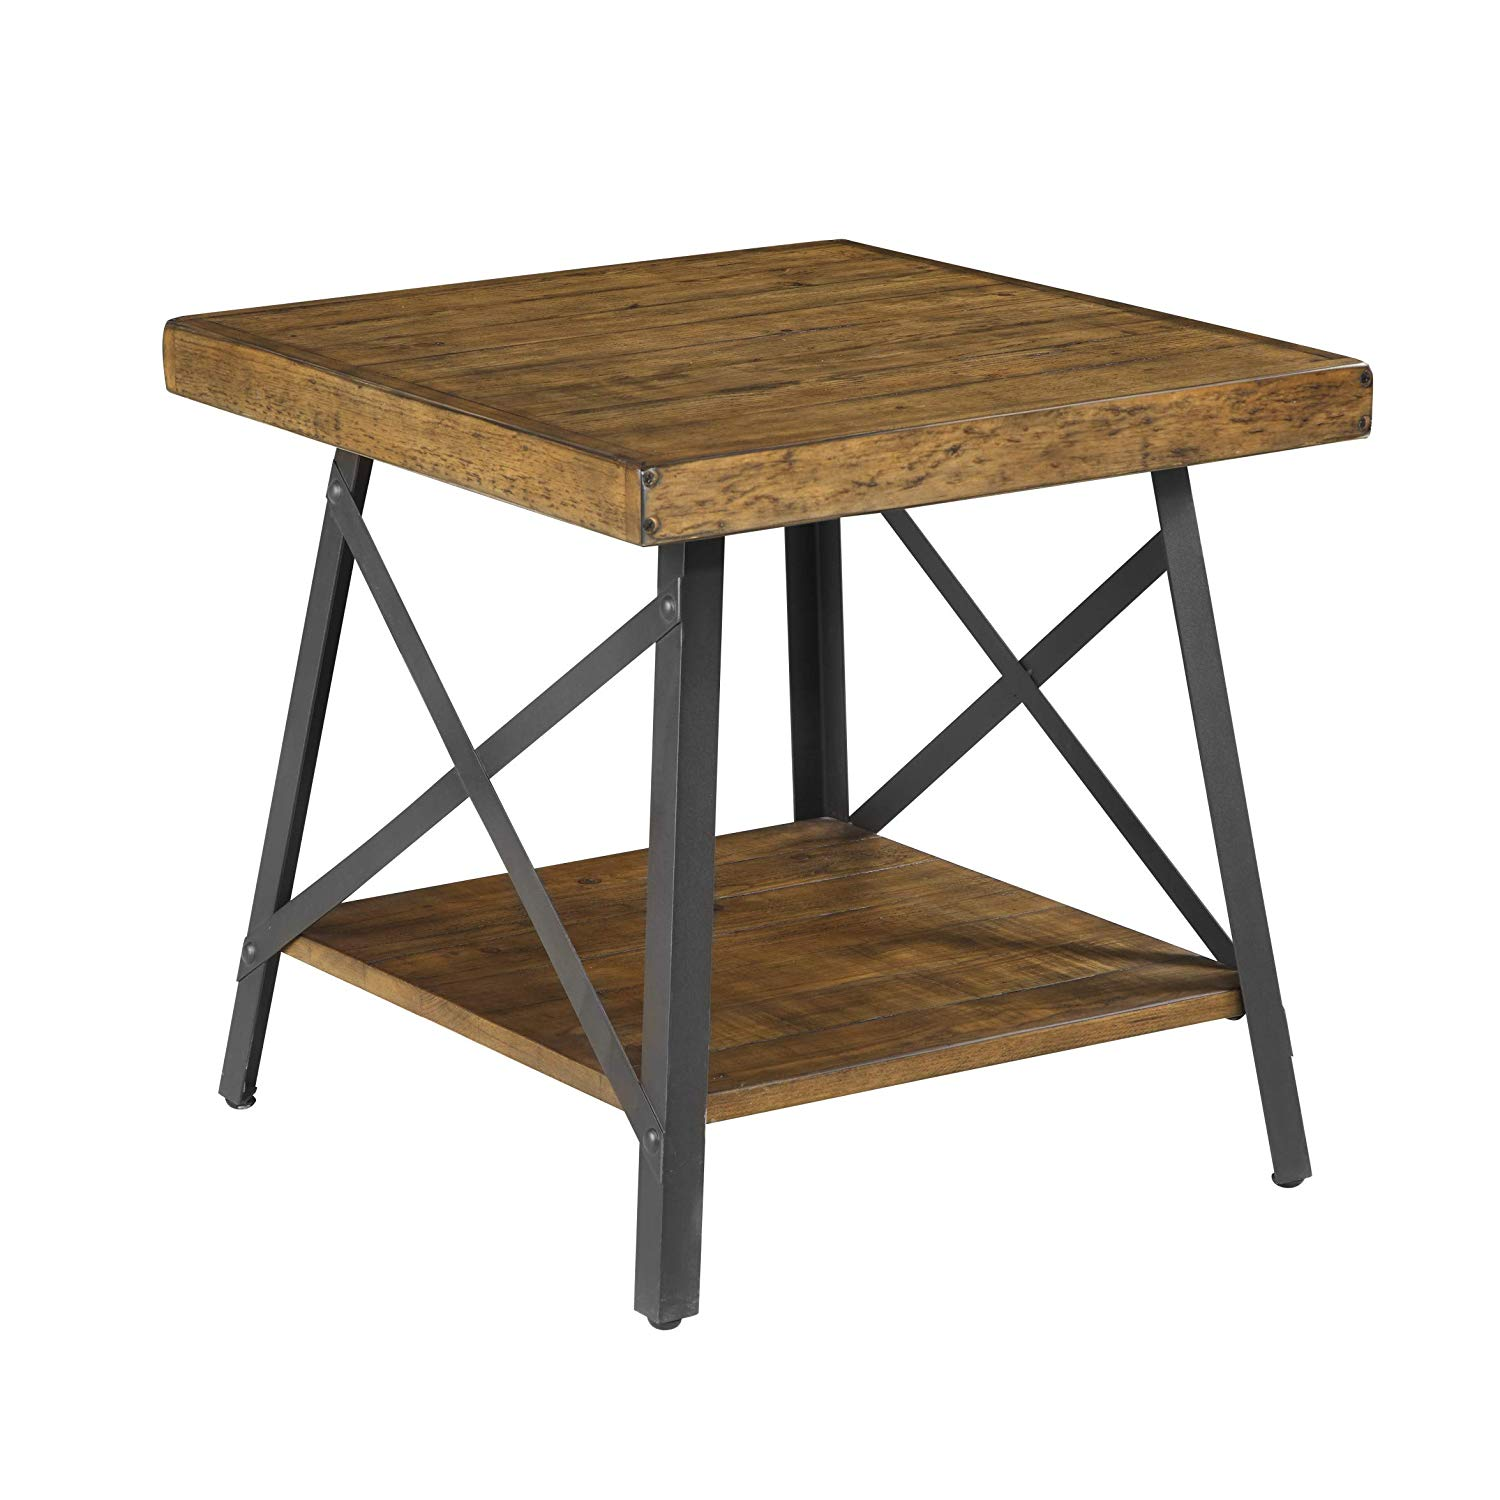 emerald home chandler rustic wood end table with solid green accent top metal base and open storage shelf kitchen dining headboard lights weber grill bath tray cherry oak